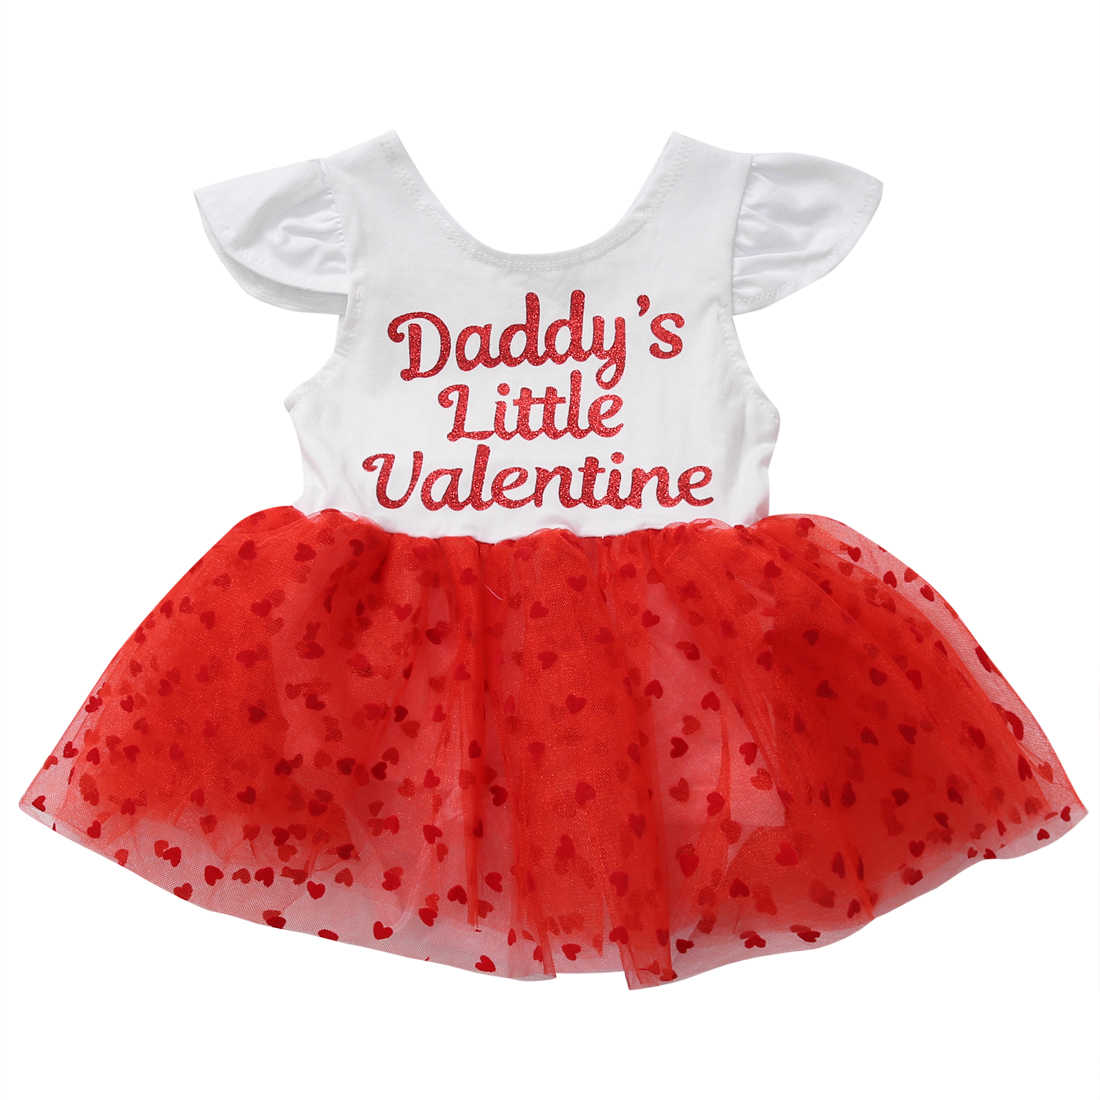 4e627345a0cb Lovely Infant Baby Girls Daddy s Little Valentine Dresses Heart Tulle Gown  Party Tutu Cake Romper Dress